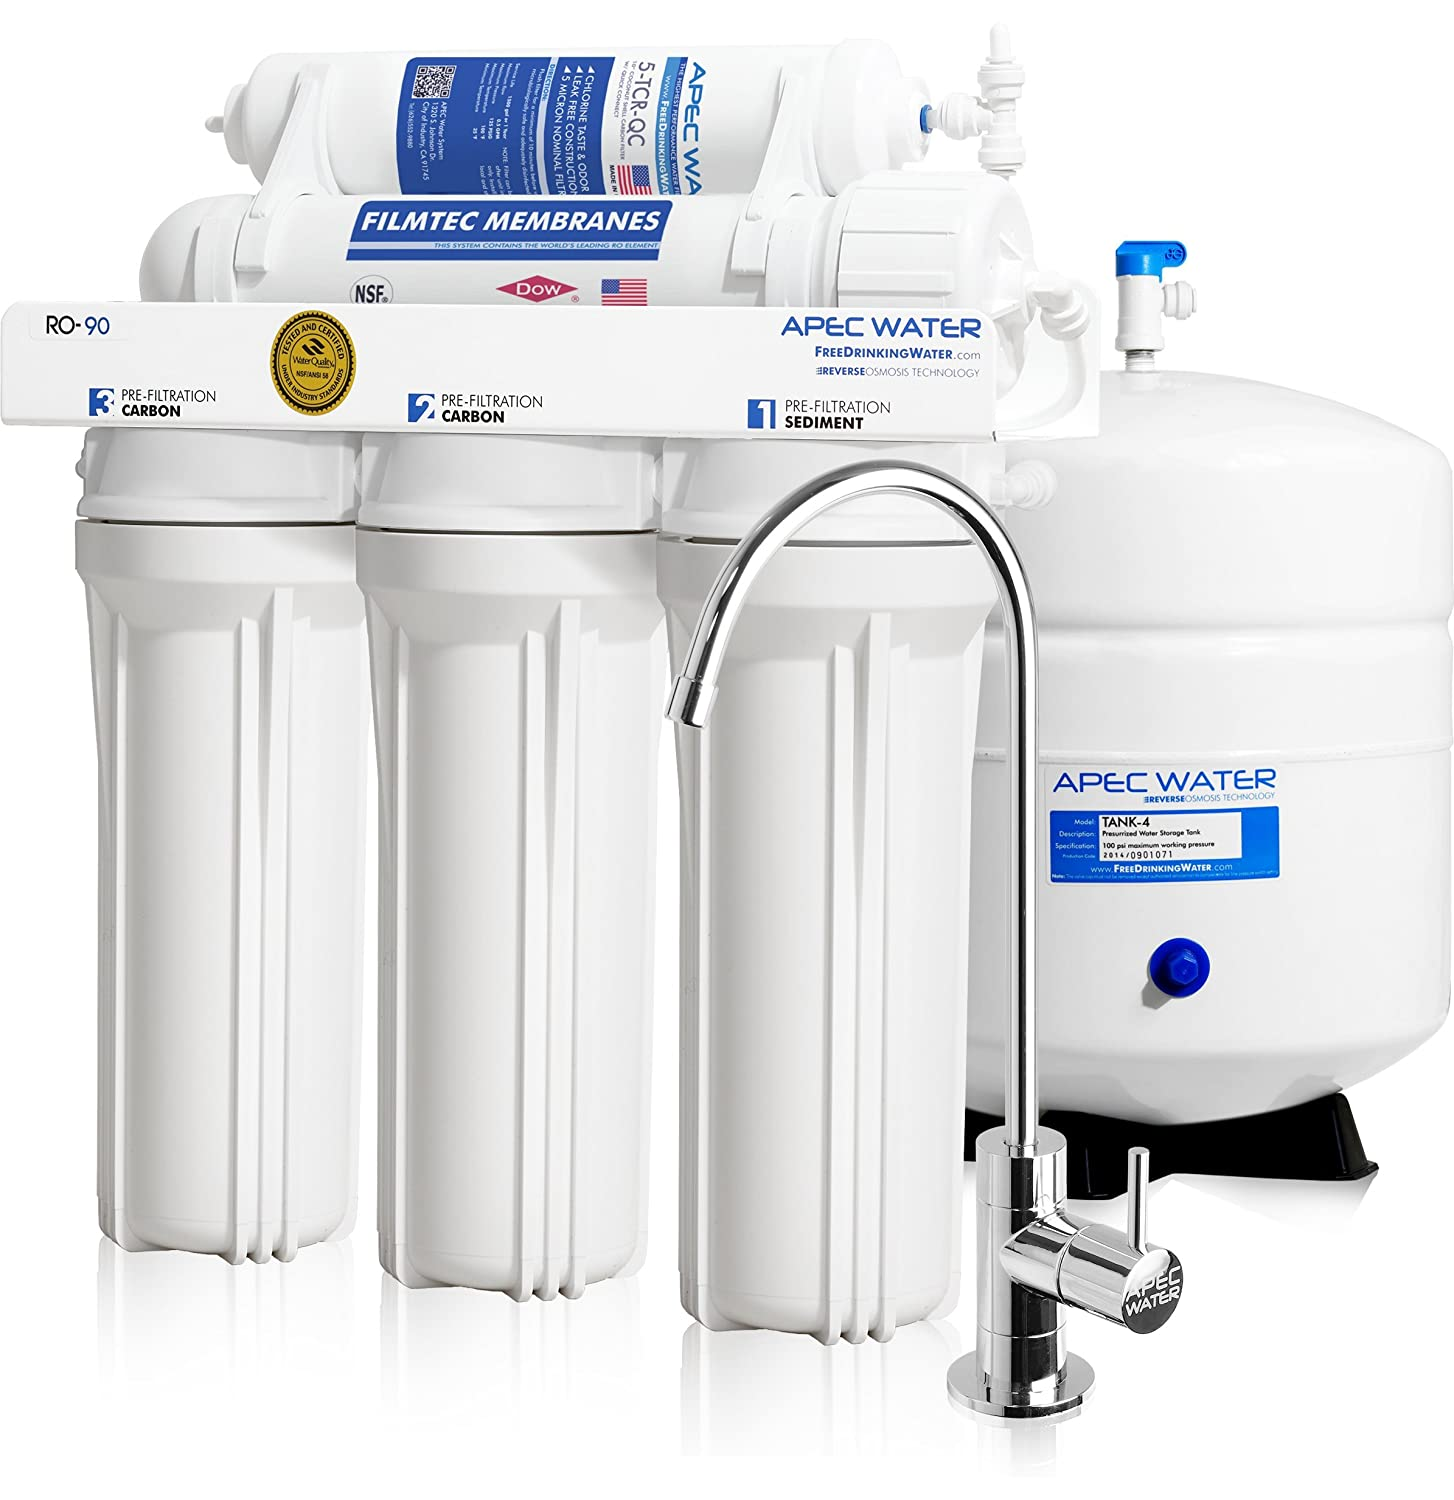 APEC Water RO-90 Reverse Osmosis Water Filter System Review